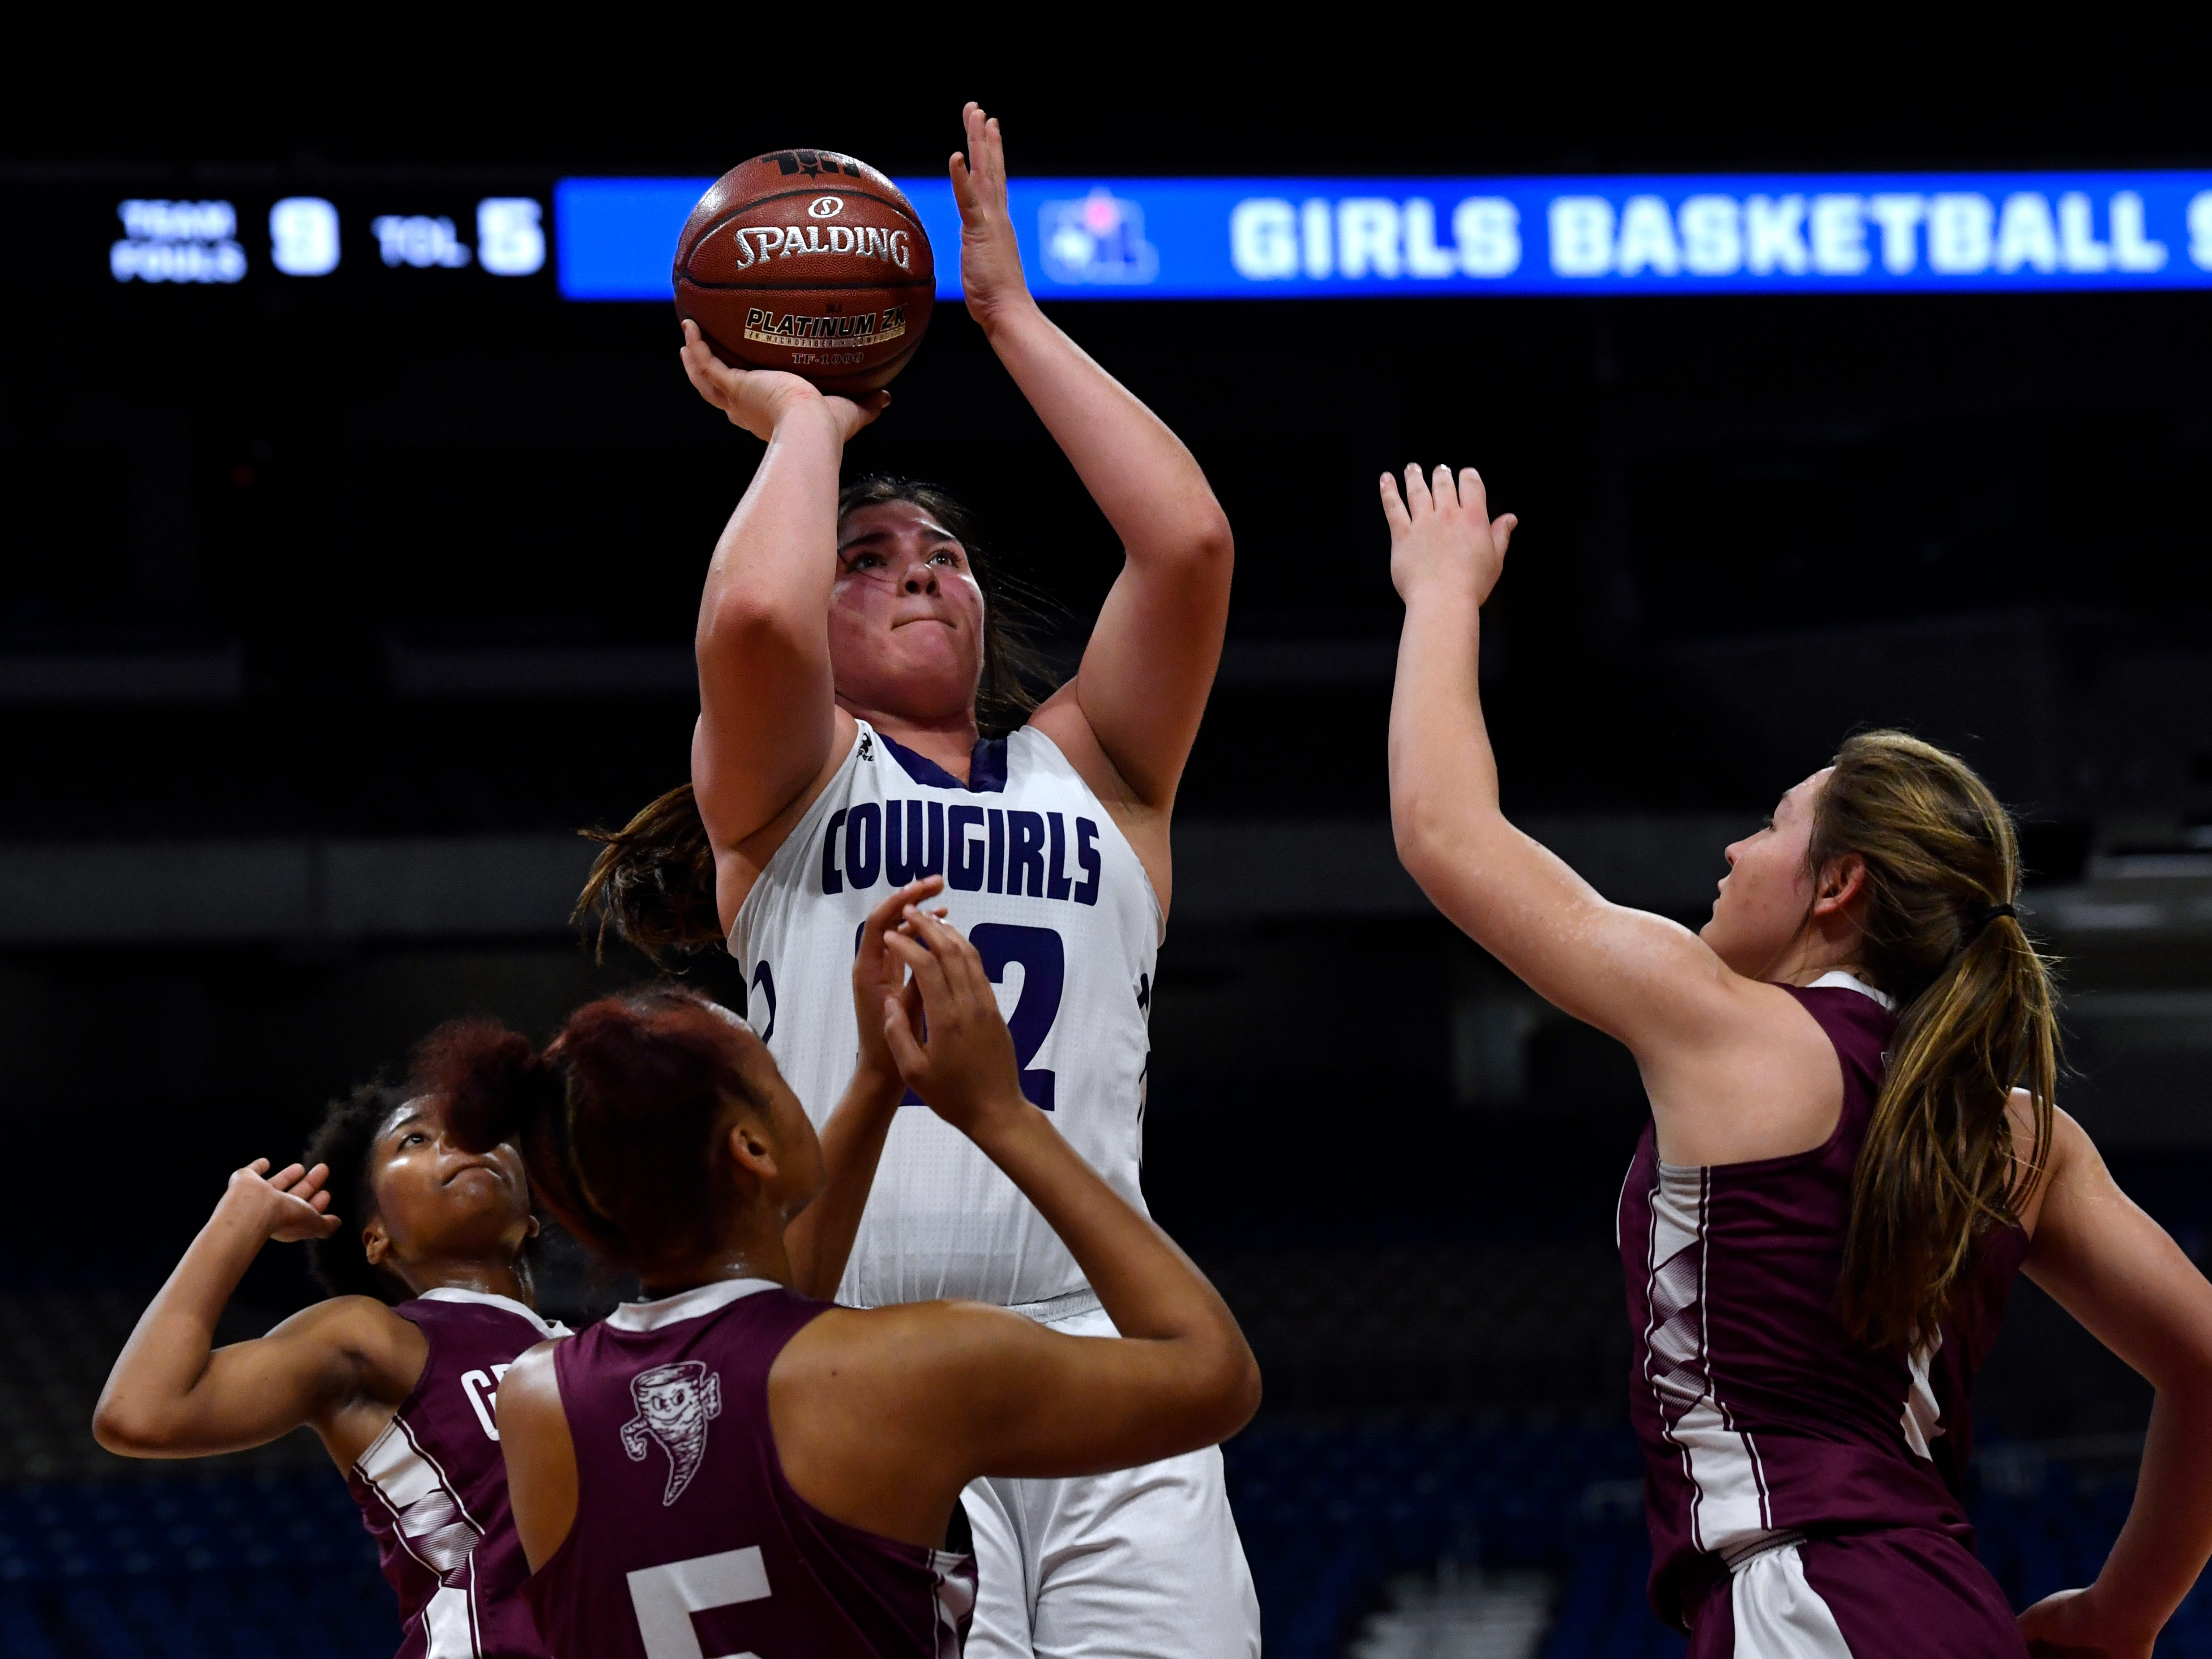 Cowgirls center Ruby Magnus aims for the basket over the heads of Grapeland Sandies players during Friday's UIL Class 2A girls state basketball semifinal at the Alamodome in San Antonio March 1, 2019.